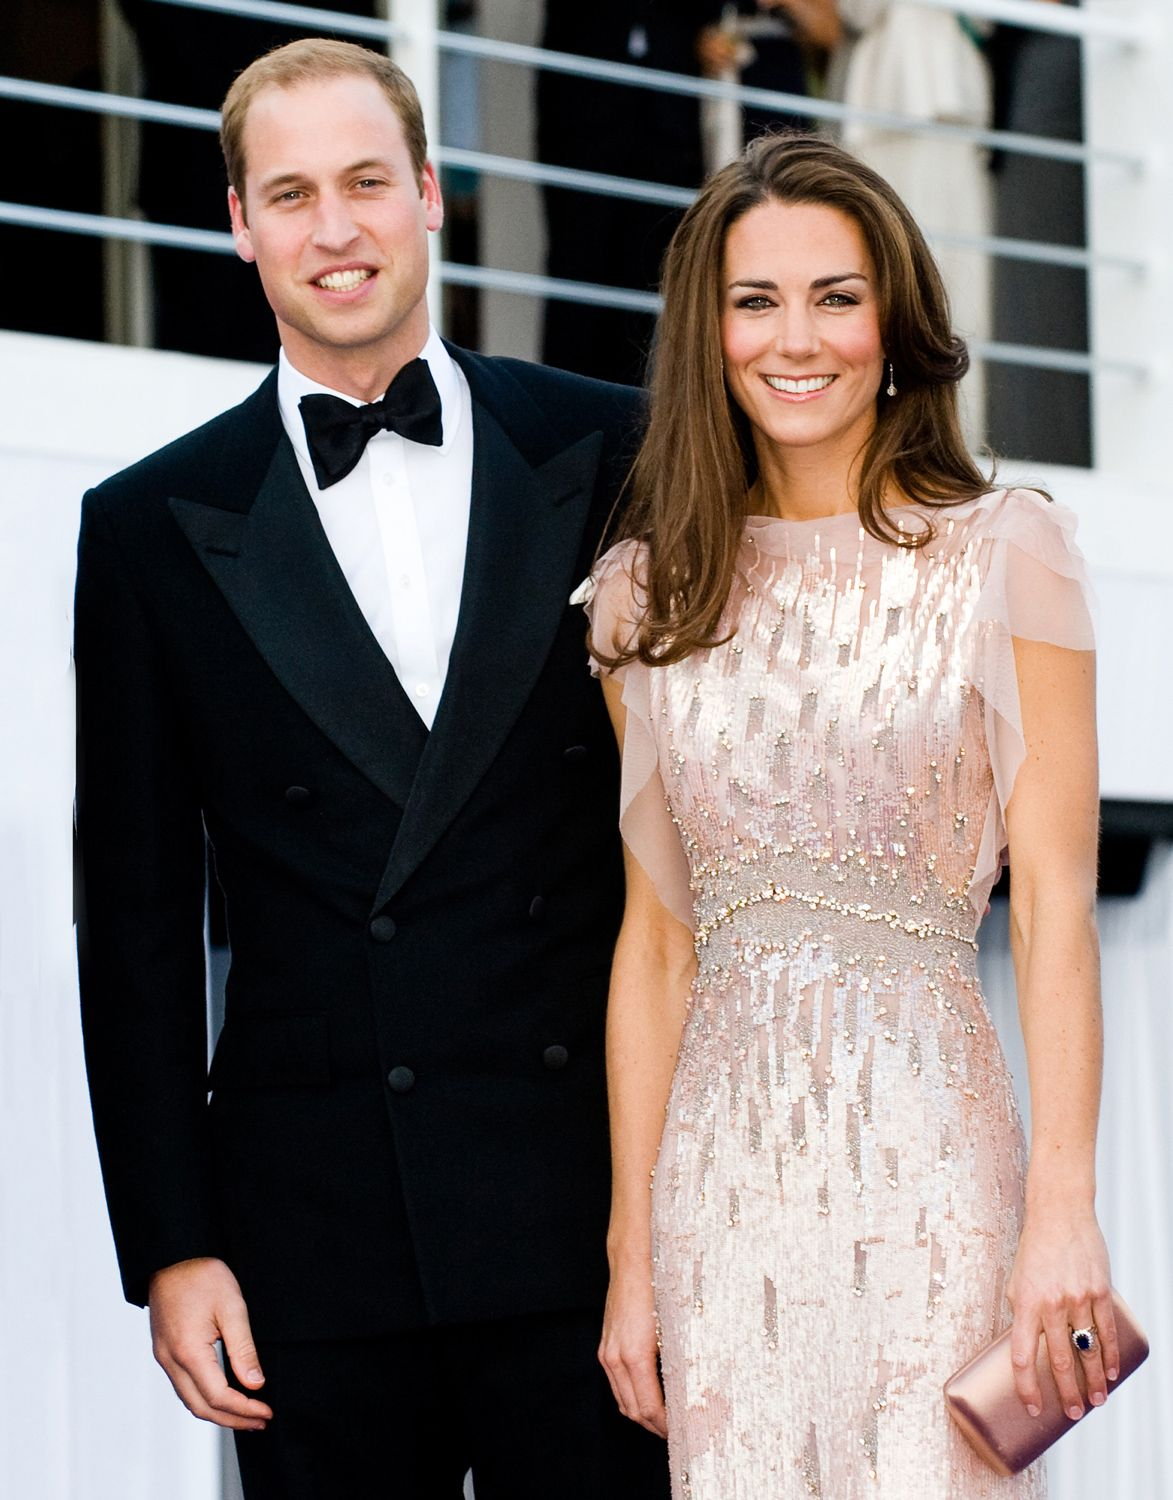 Duke & Duchess of Cambridge